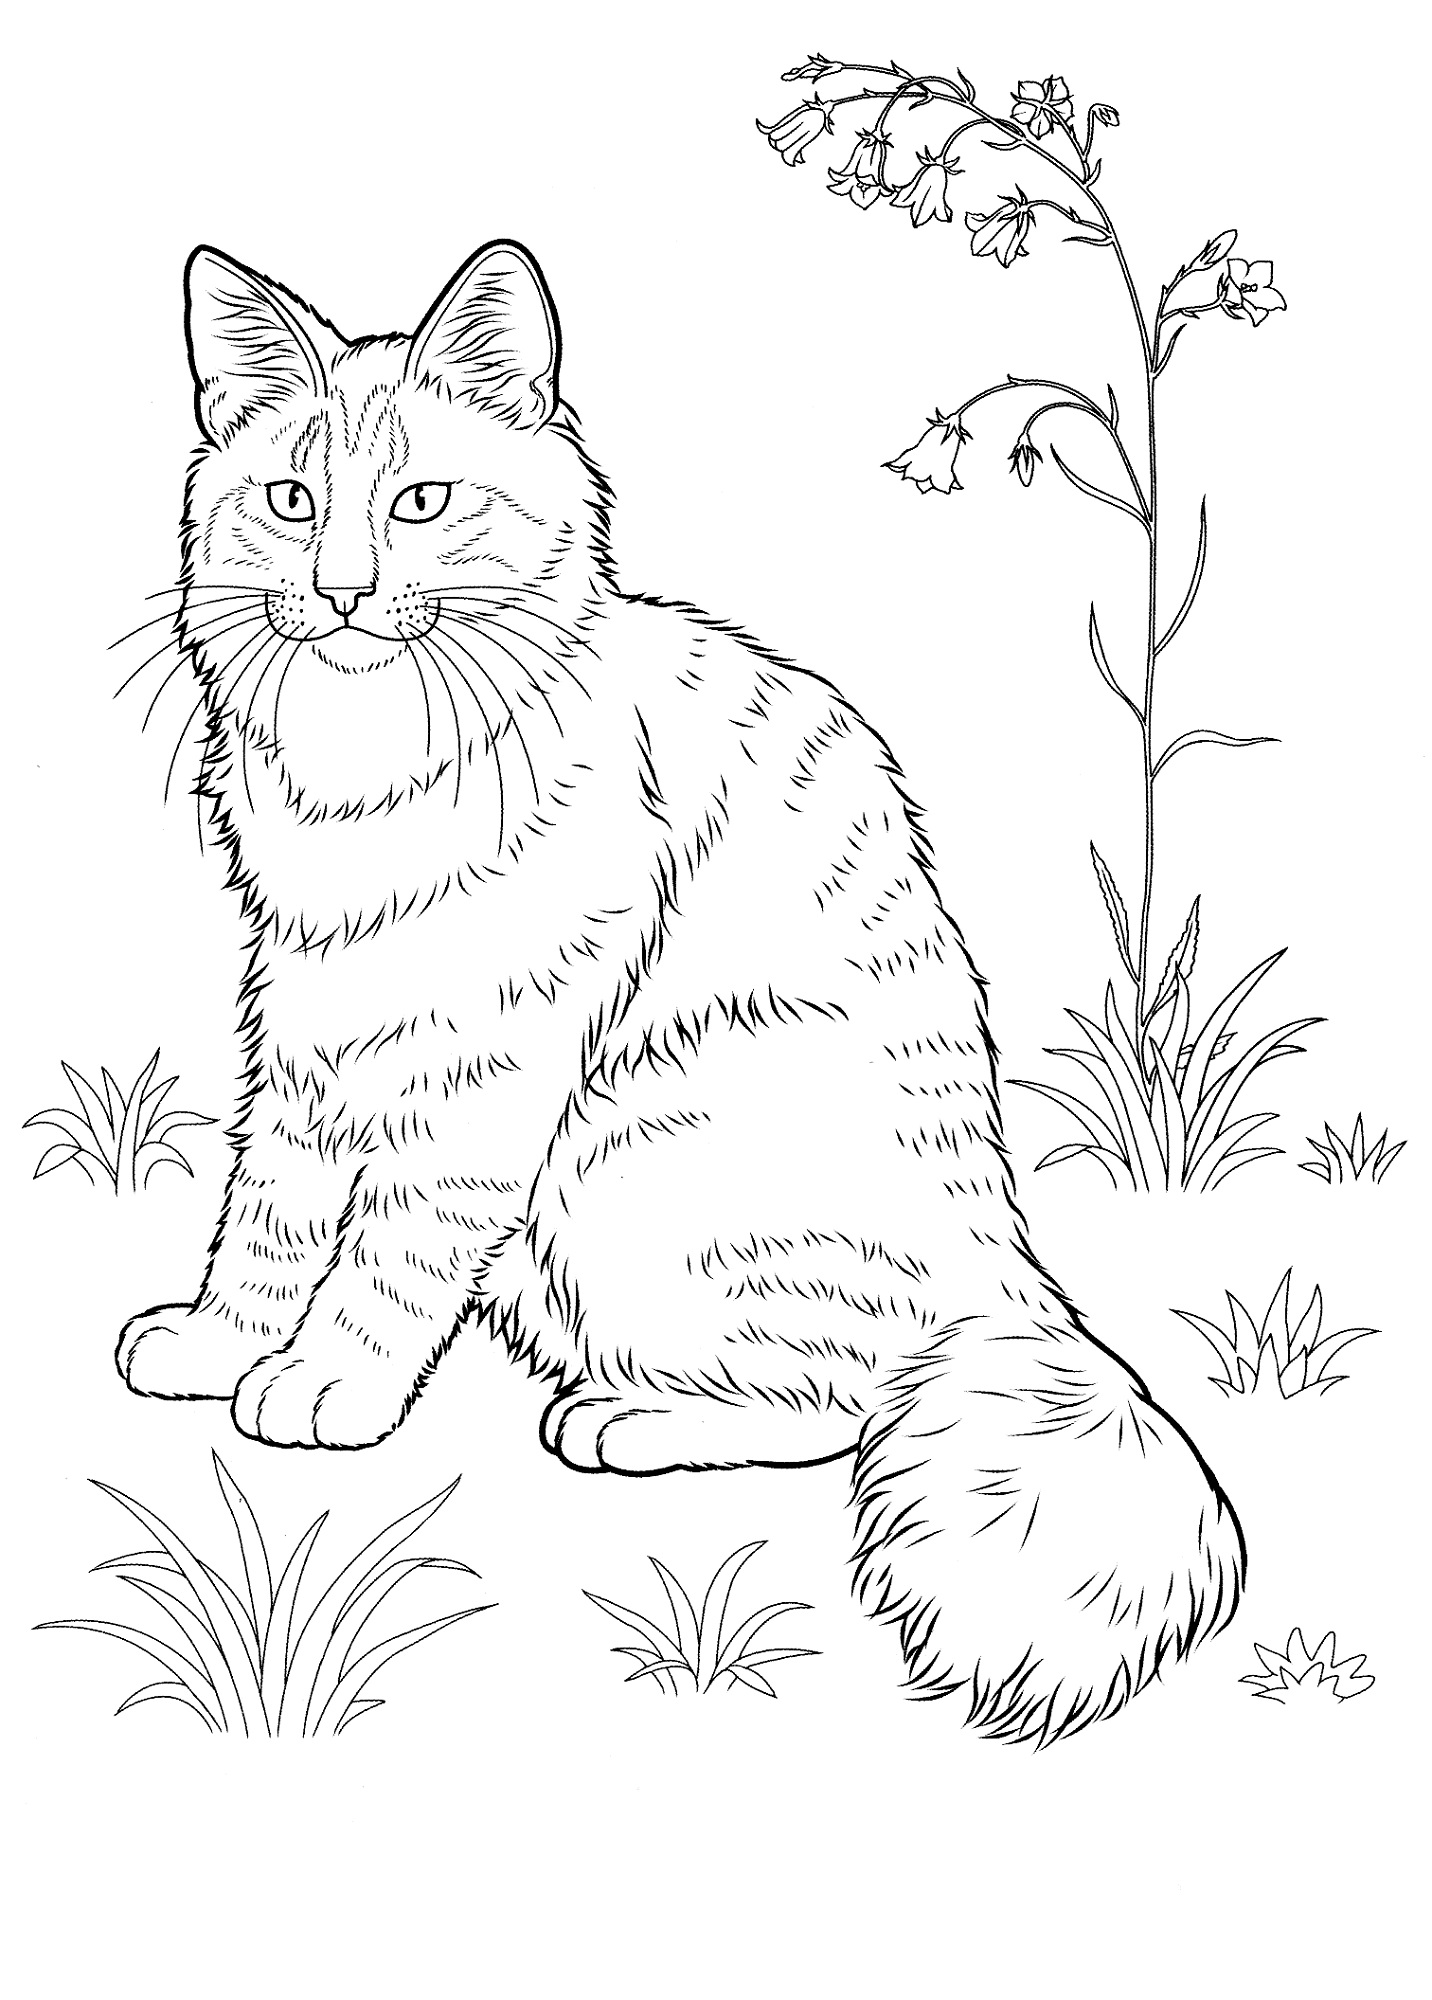 coloring cat pages adorable cat coloring pages learning printable pages cat coloring